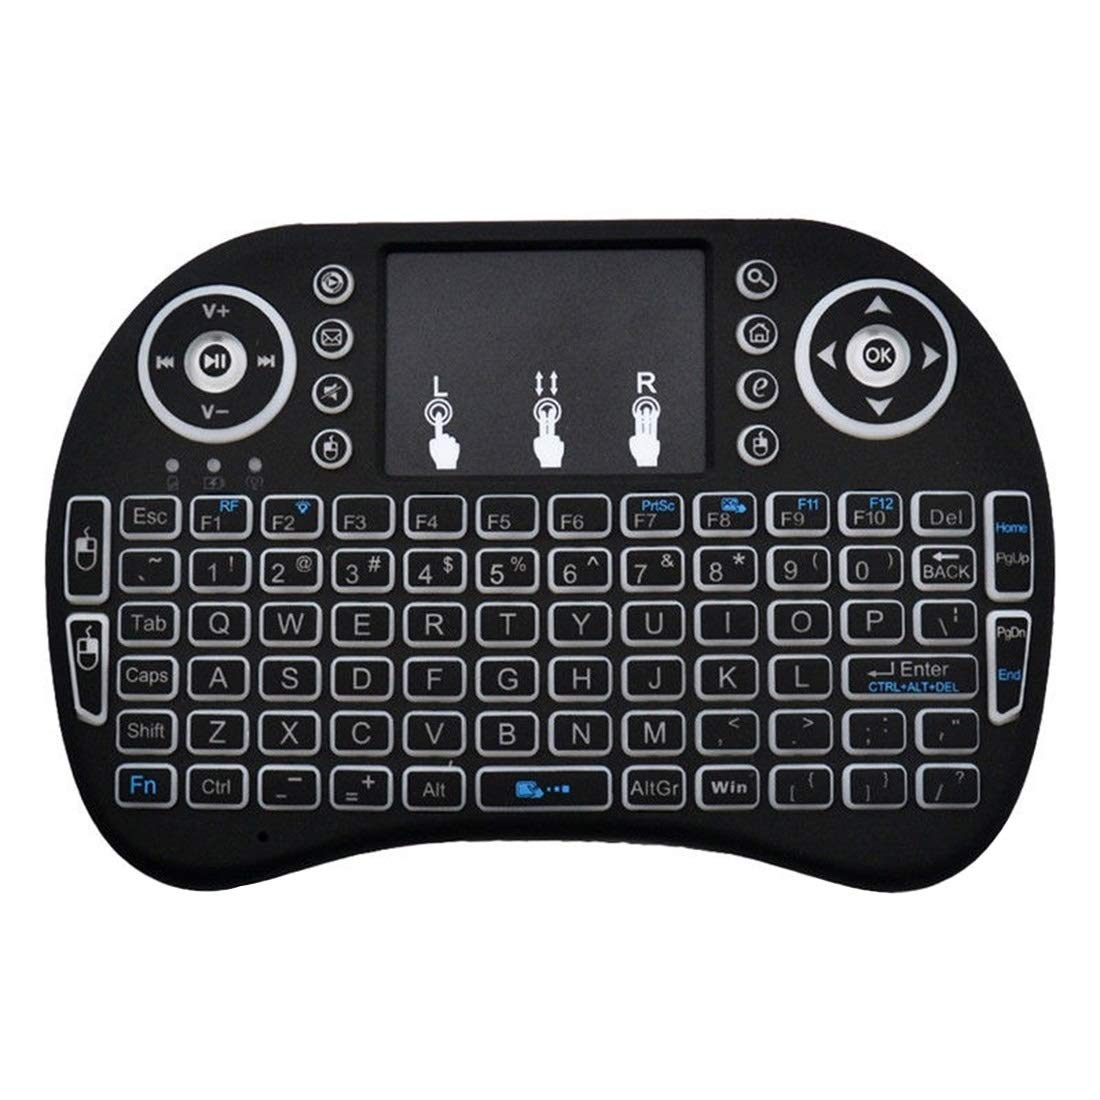 JINYANG Helpful Mini i8 Air Mouse 92-Keys QWERTY 2.4G Wireless Backlight Keyboard with Touchpad for Android TV Box /& Google TV Box /& PC Tablet /& Xbox360 /& PS3 /& HTPC//IPTV Support Auto Sleep and Auto